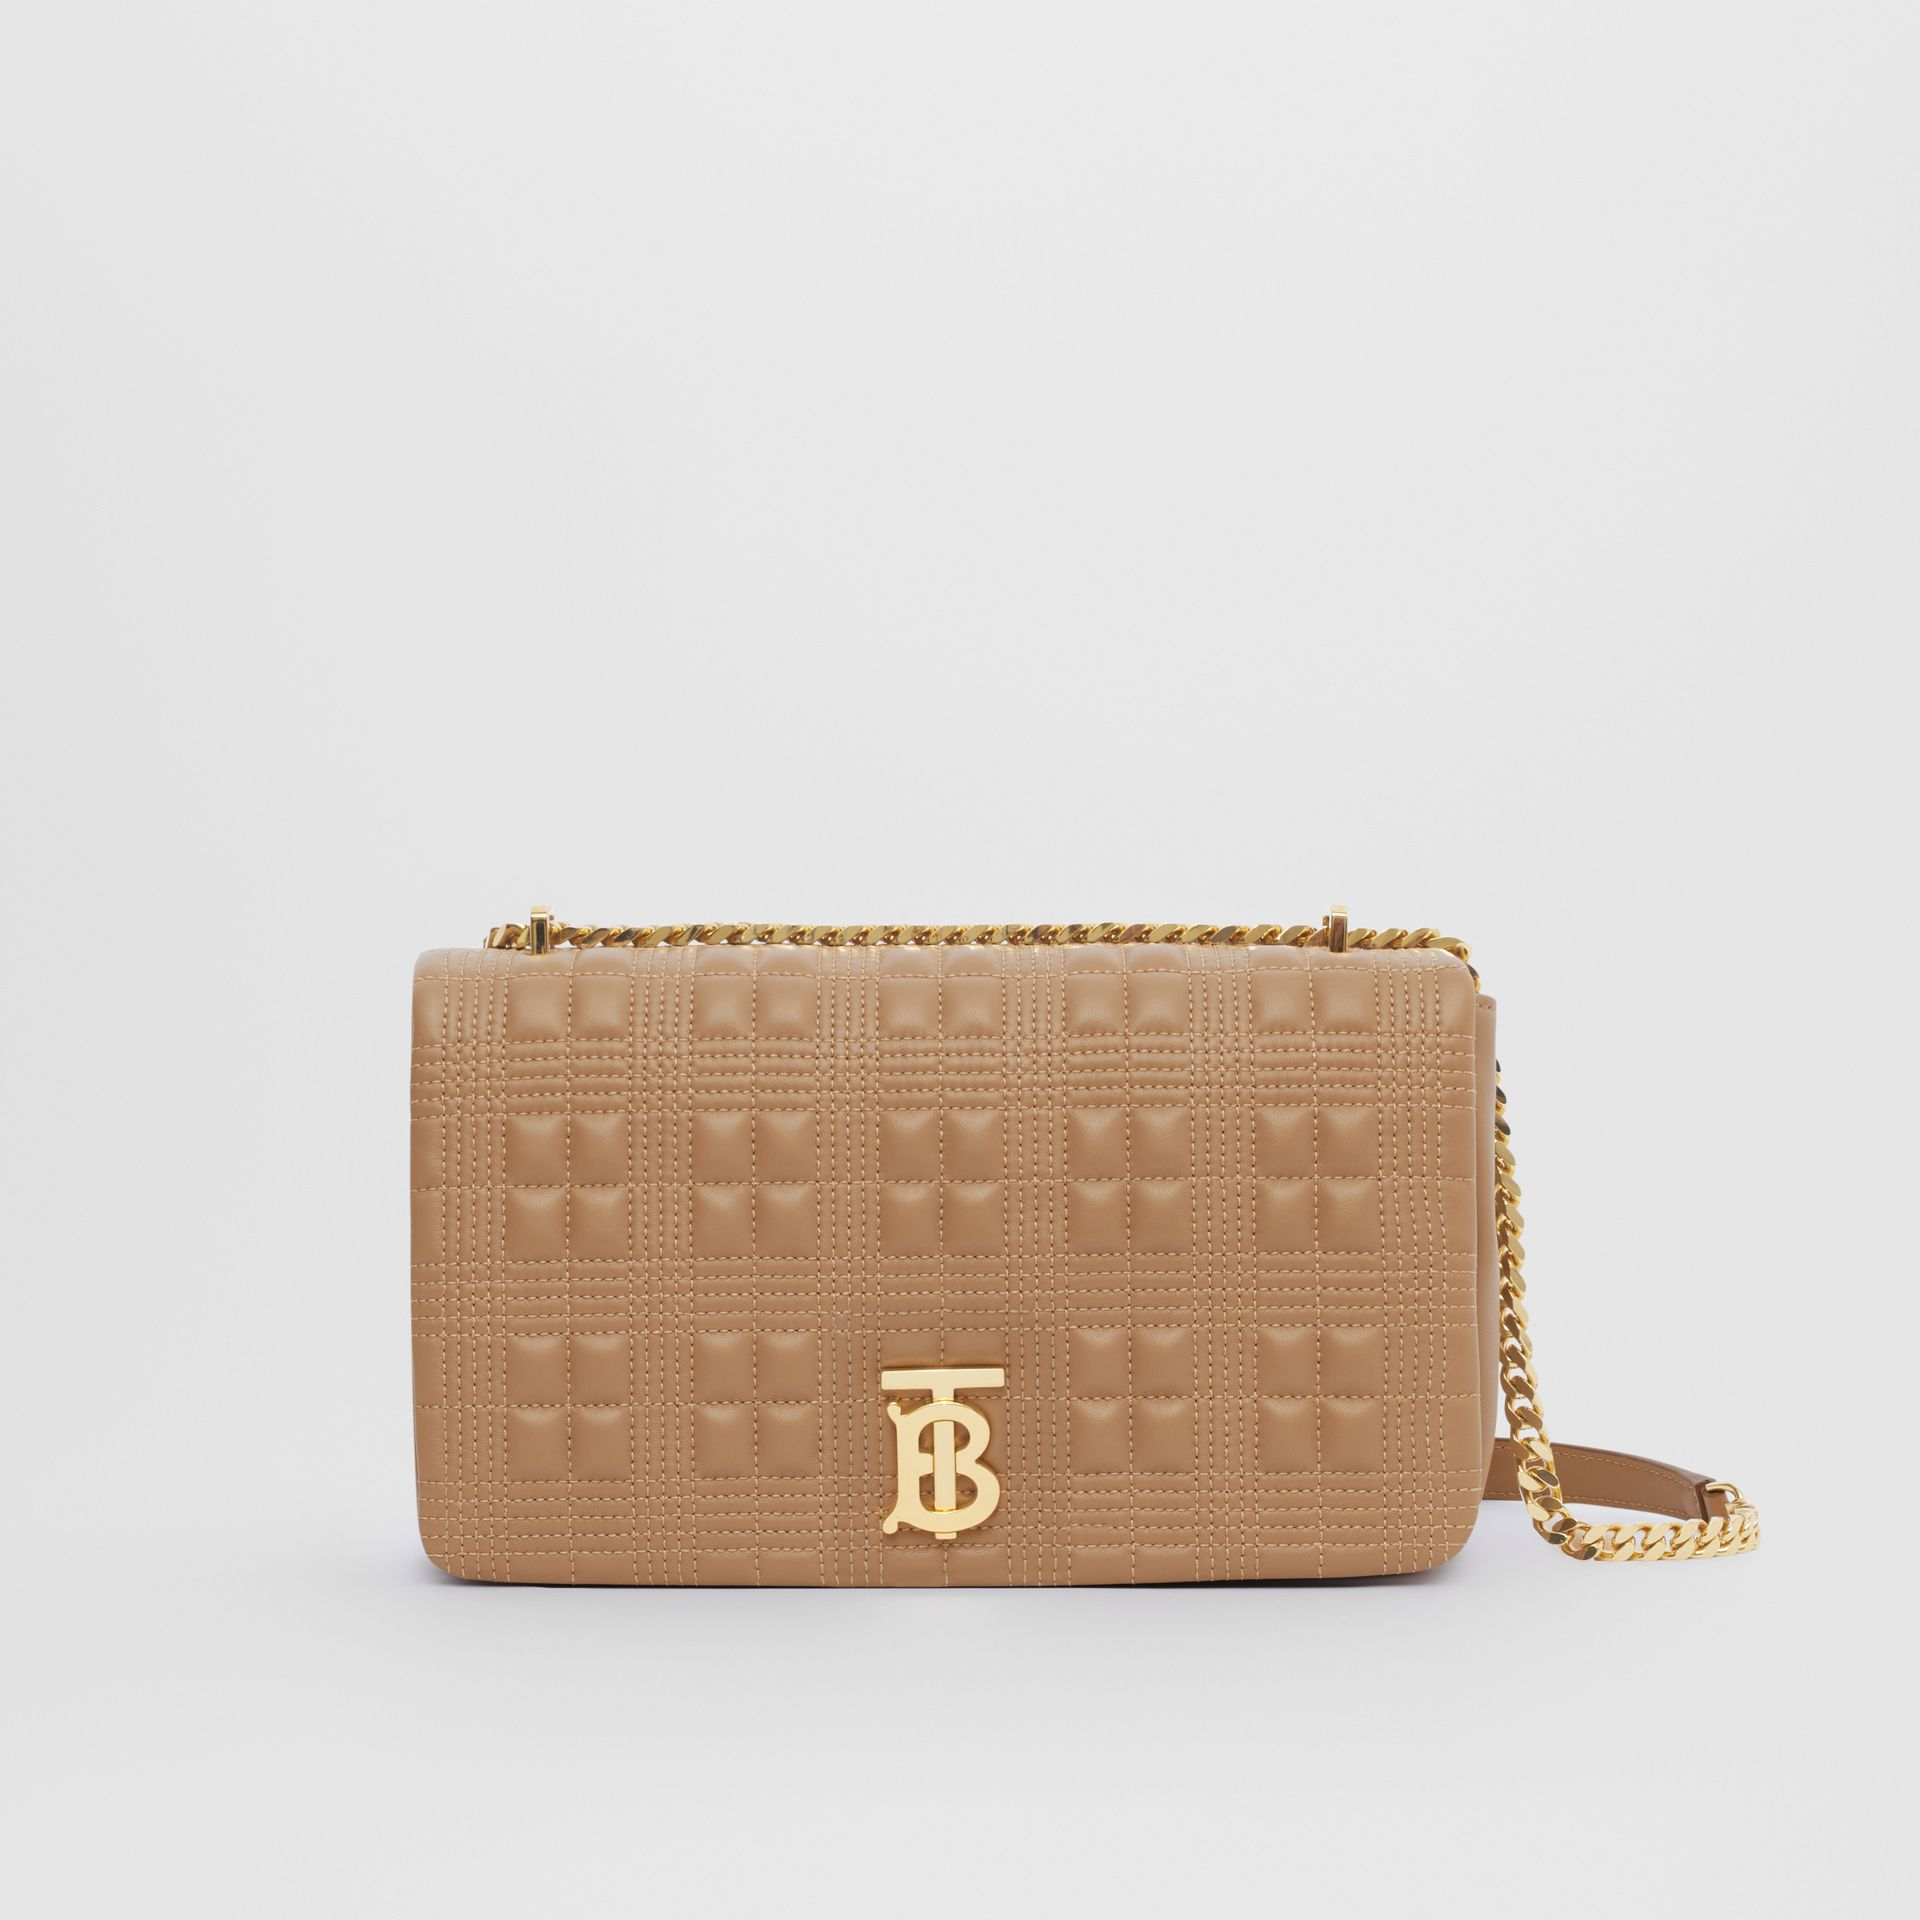 Medium Quilted Lambskin Lola Bag in Camel - Women | Burberry United Kingdom - gallery image 0